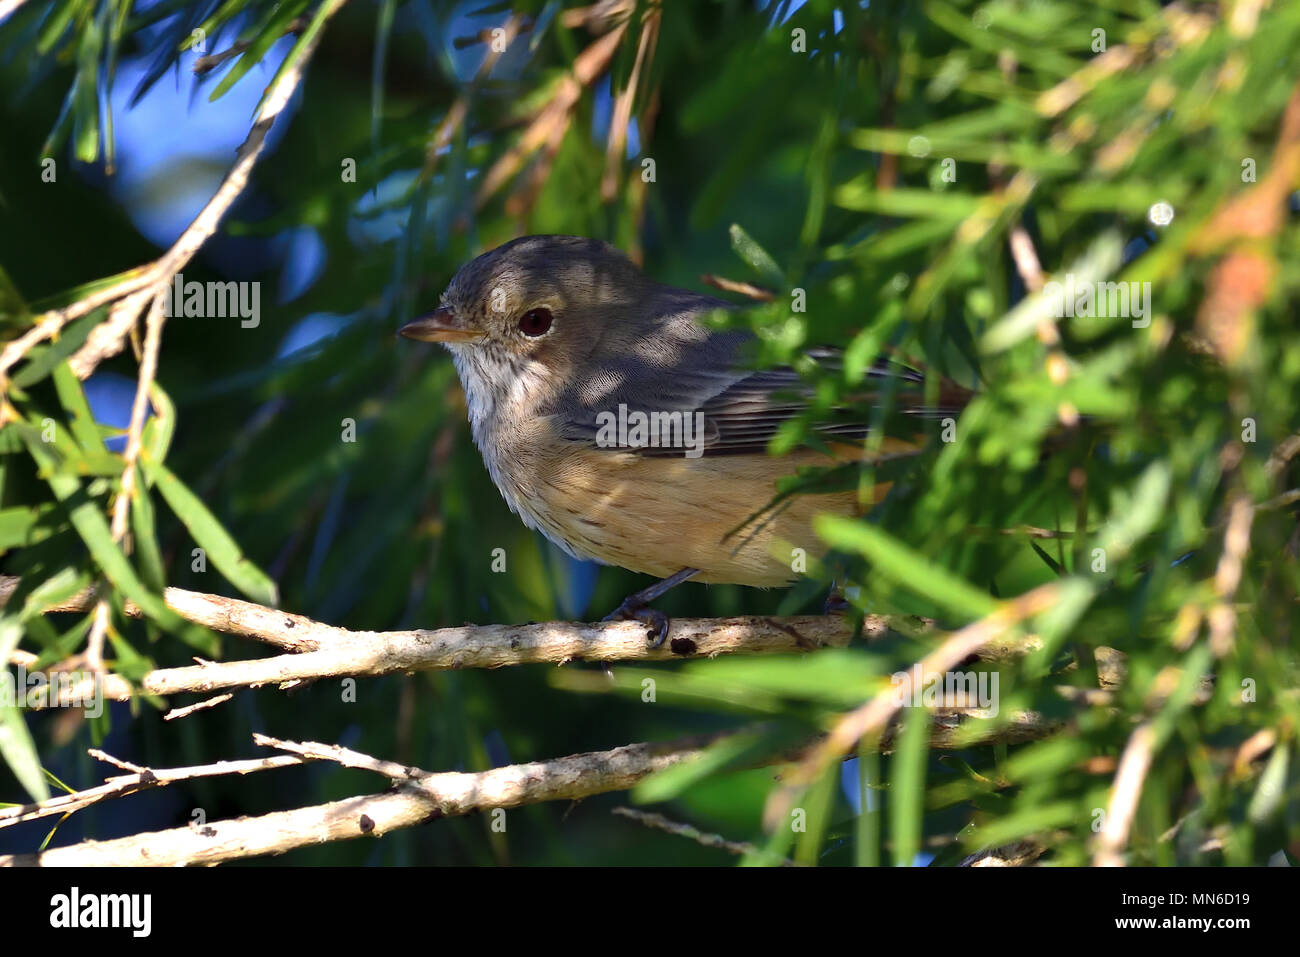 An Australian, Queensland Immature Rufous Whistler, Pachycephala rufiventris resting on a Tree branch hiding in thick bush - Stock Image